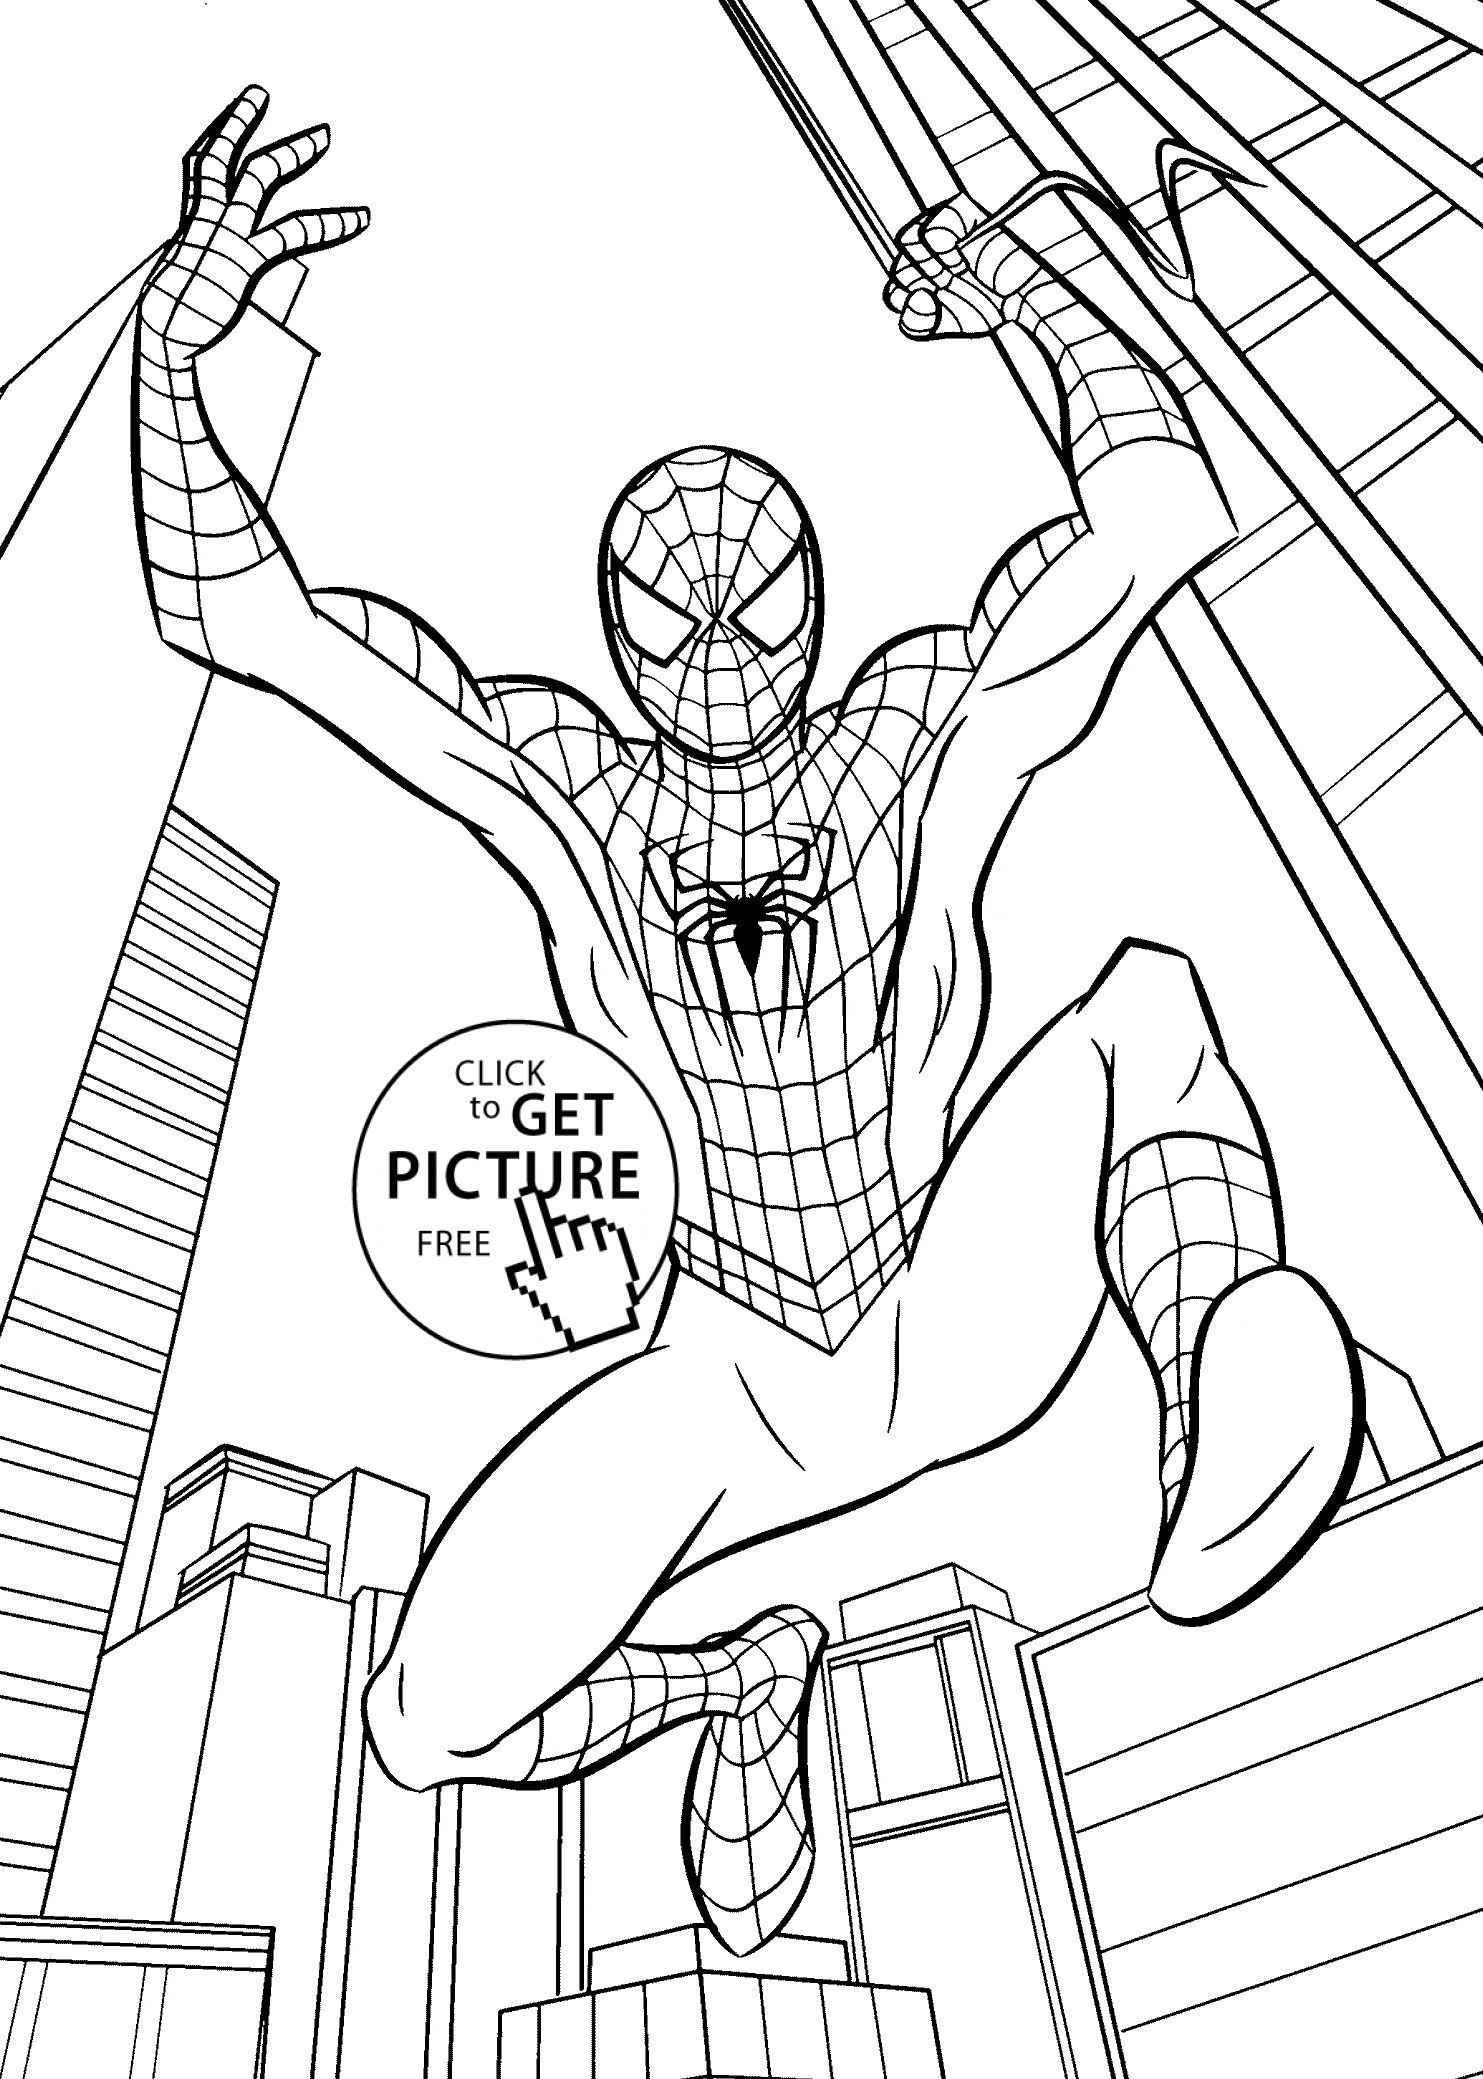 Spiderman drawings easy spiderman drawings for kids how to draw spiderman easy step by